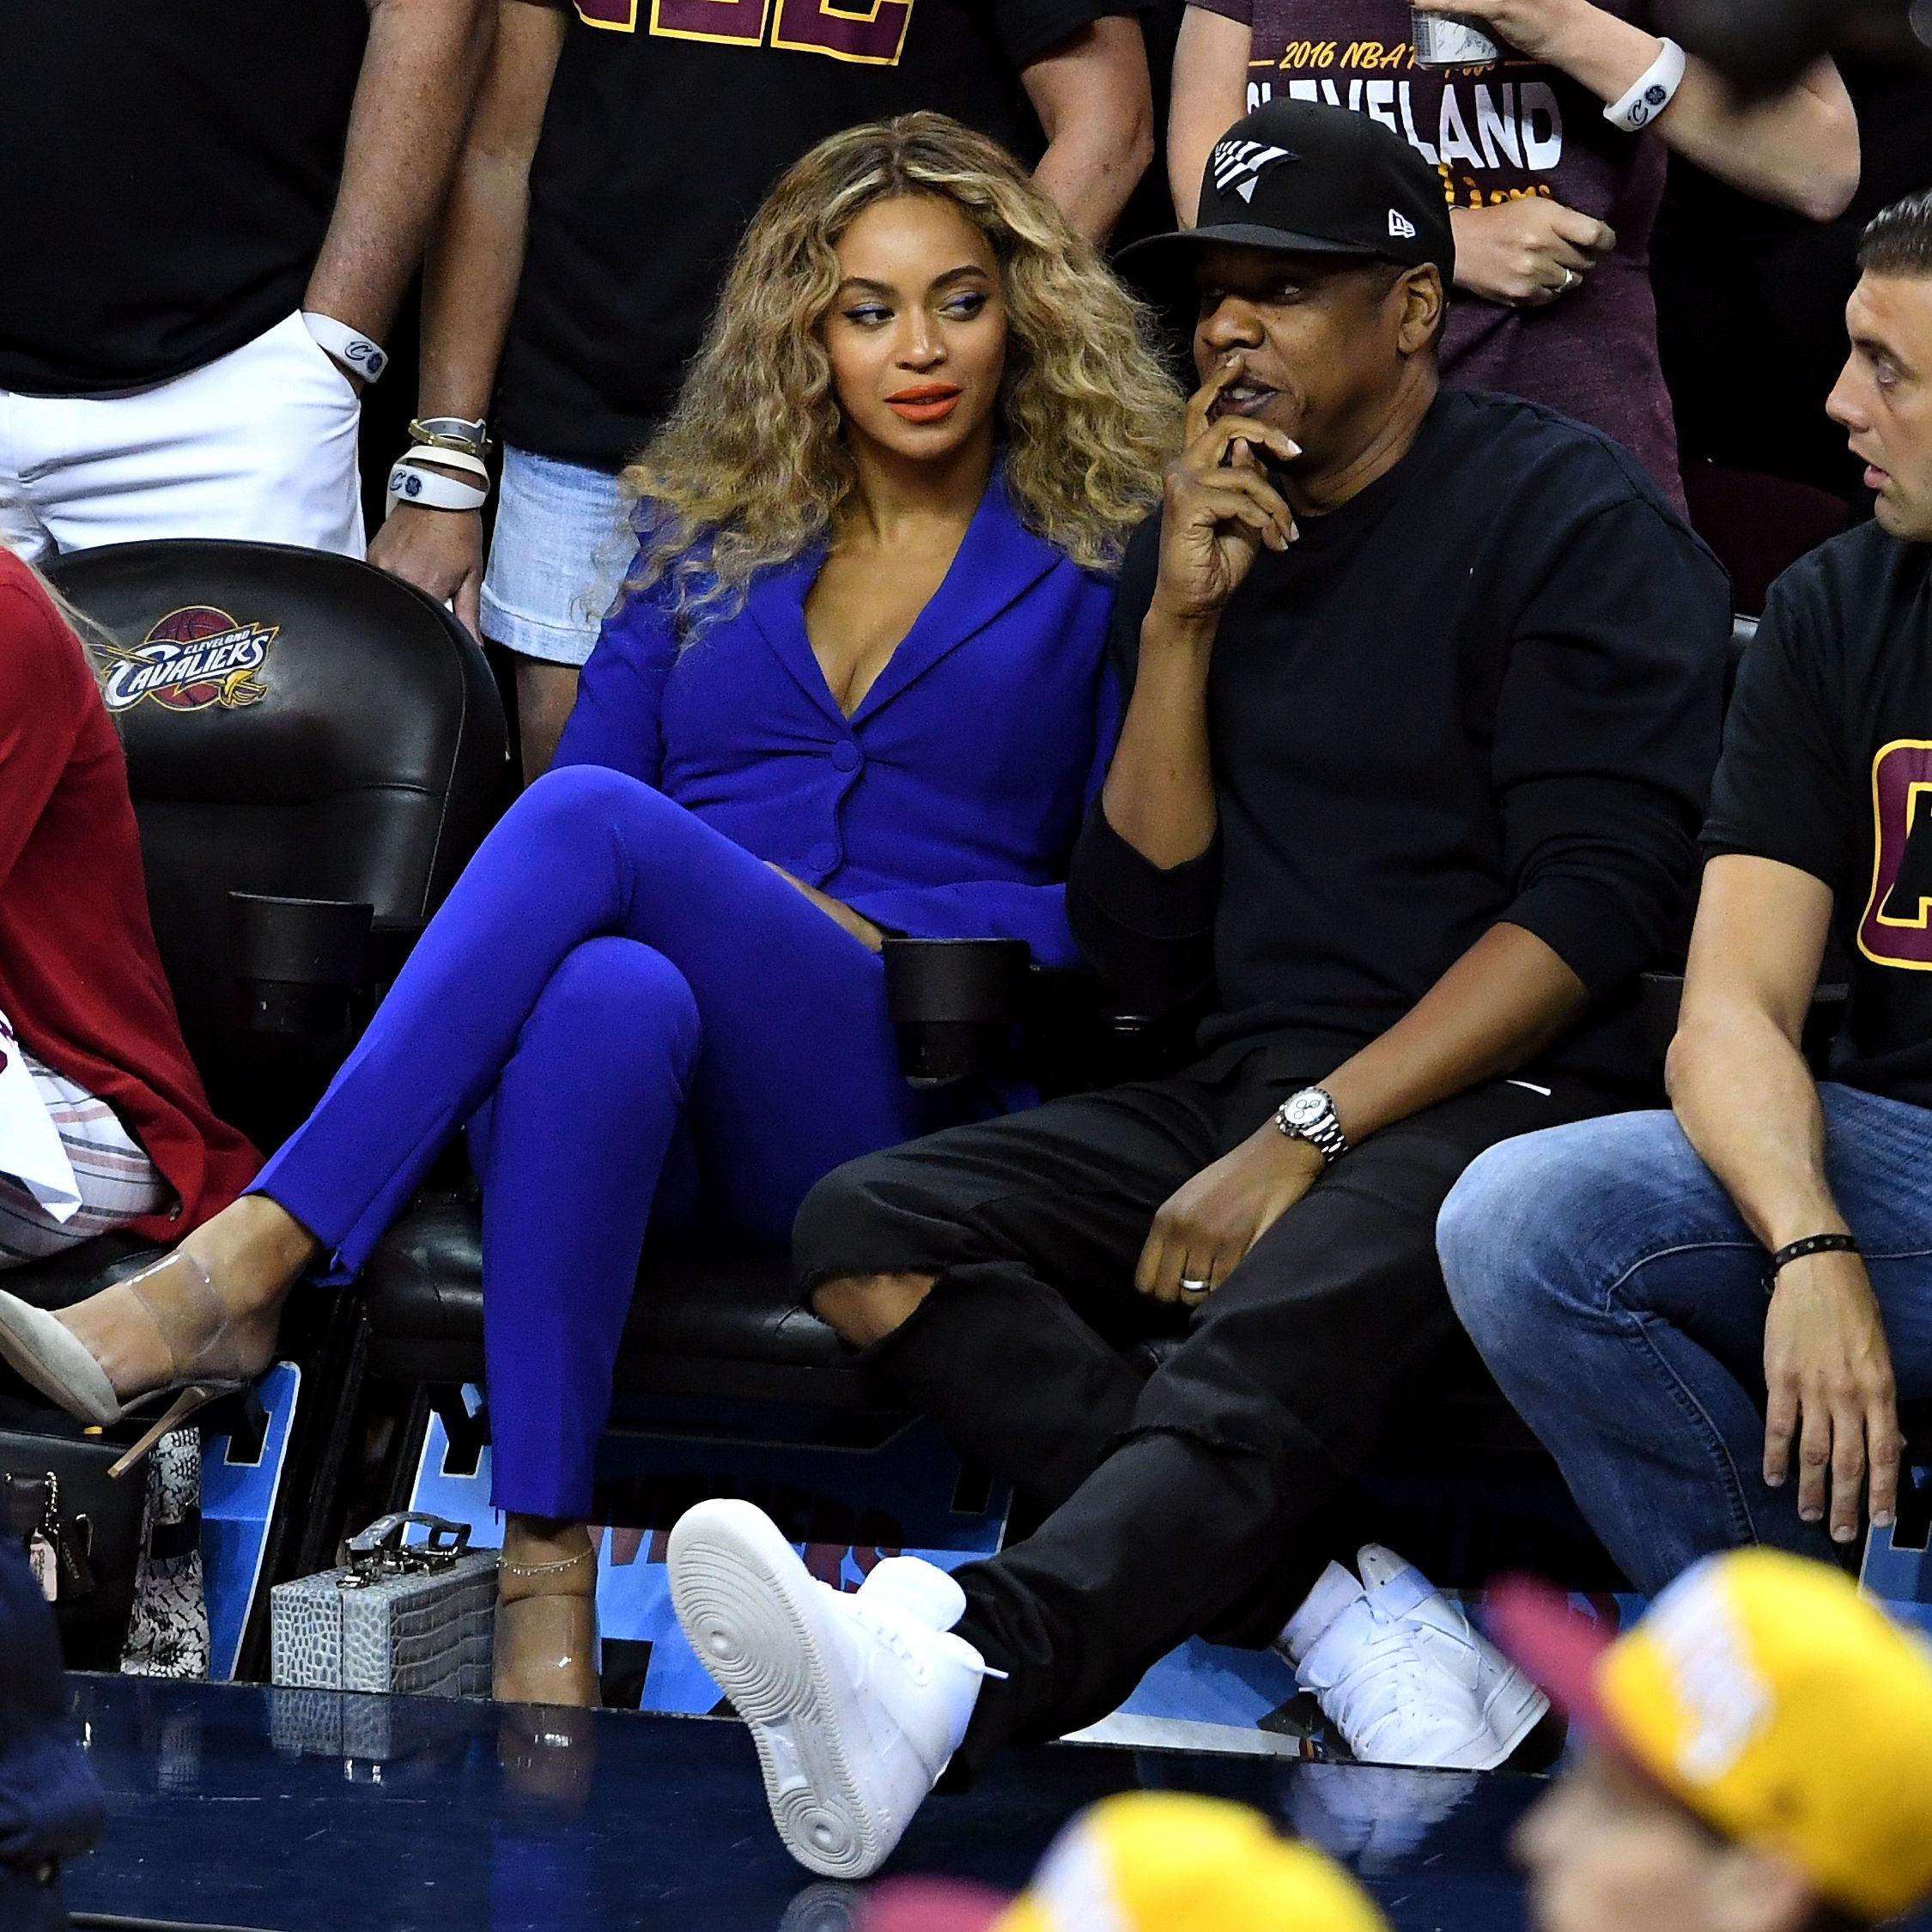 Beyonce and Jay Z on a date at a basketball game